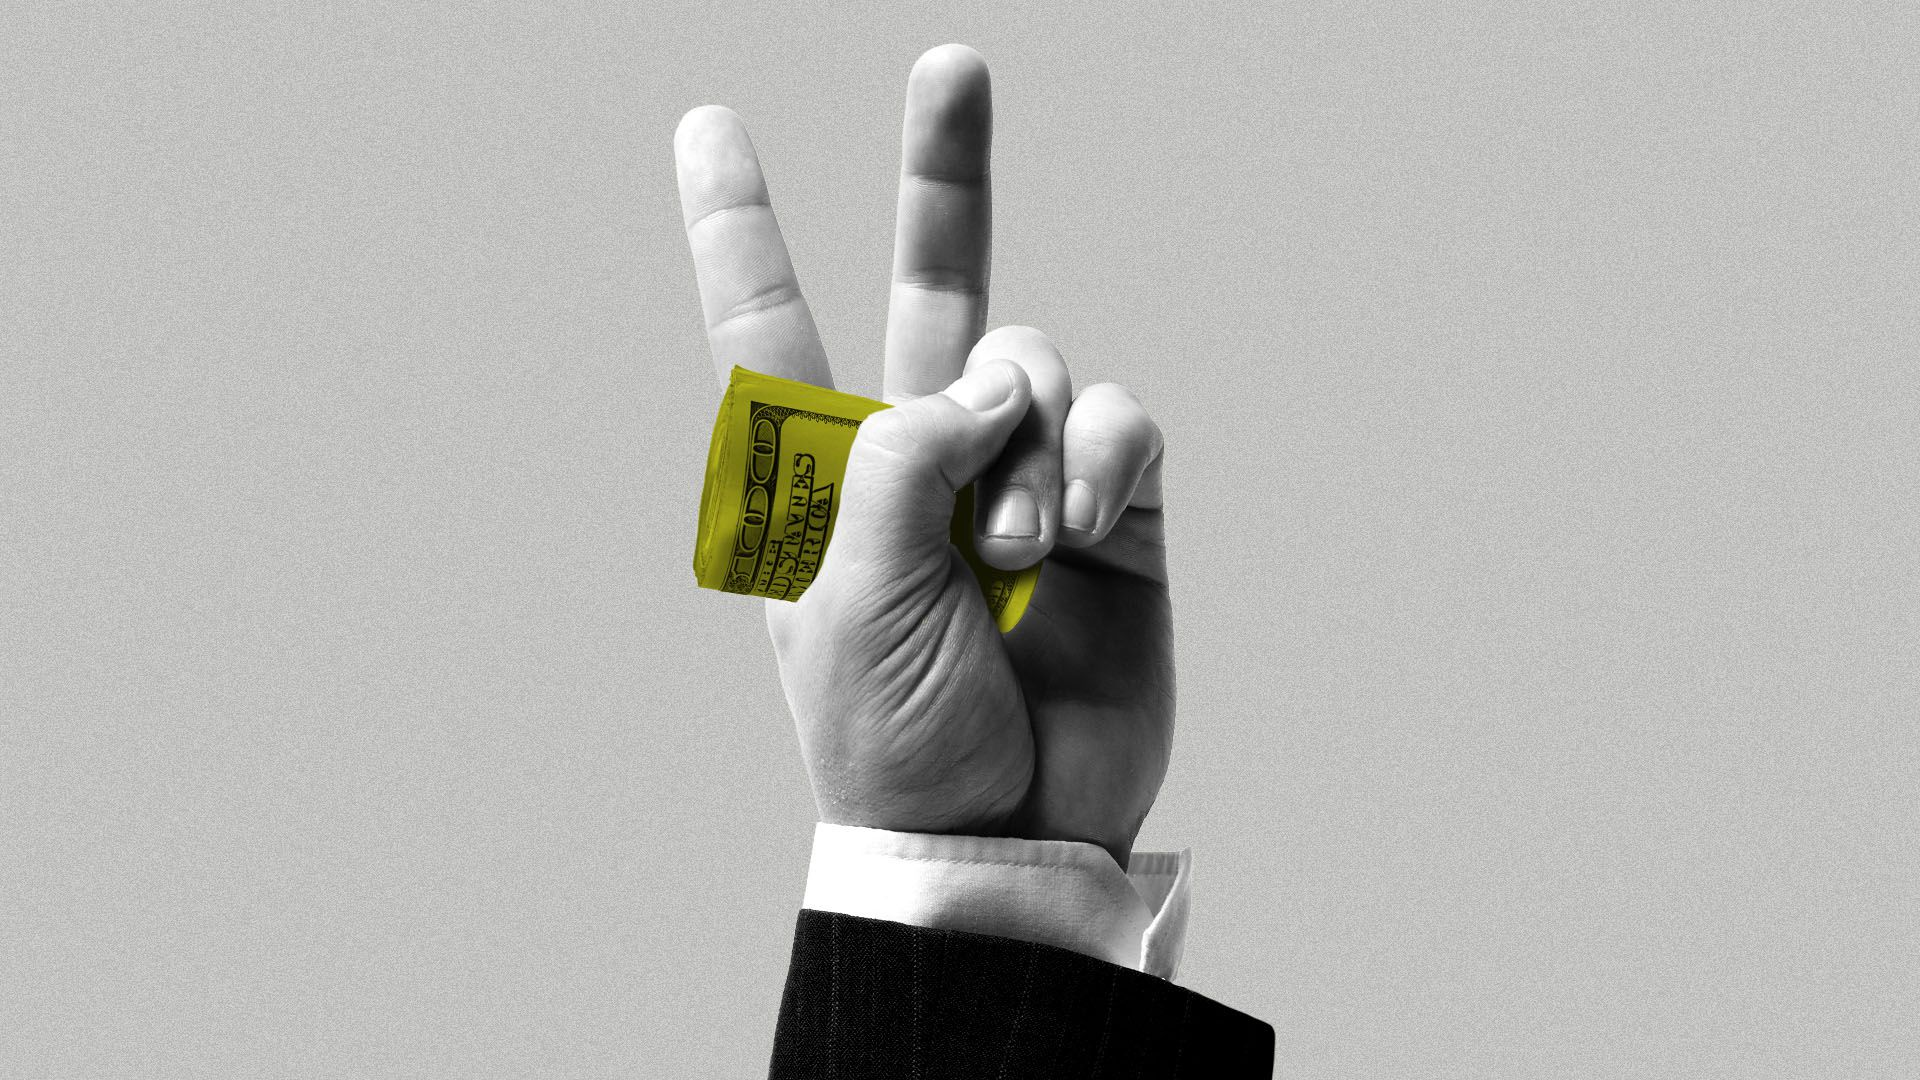 Illustration of a hand in a business suit giving a peace sign while holding a wad of hundred dollar bills